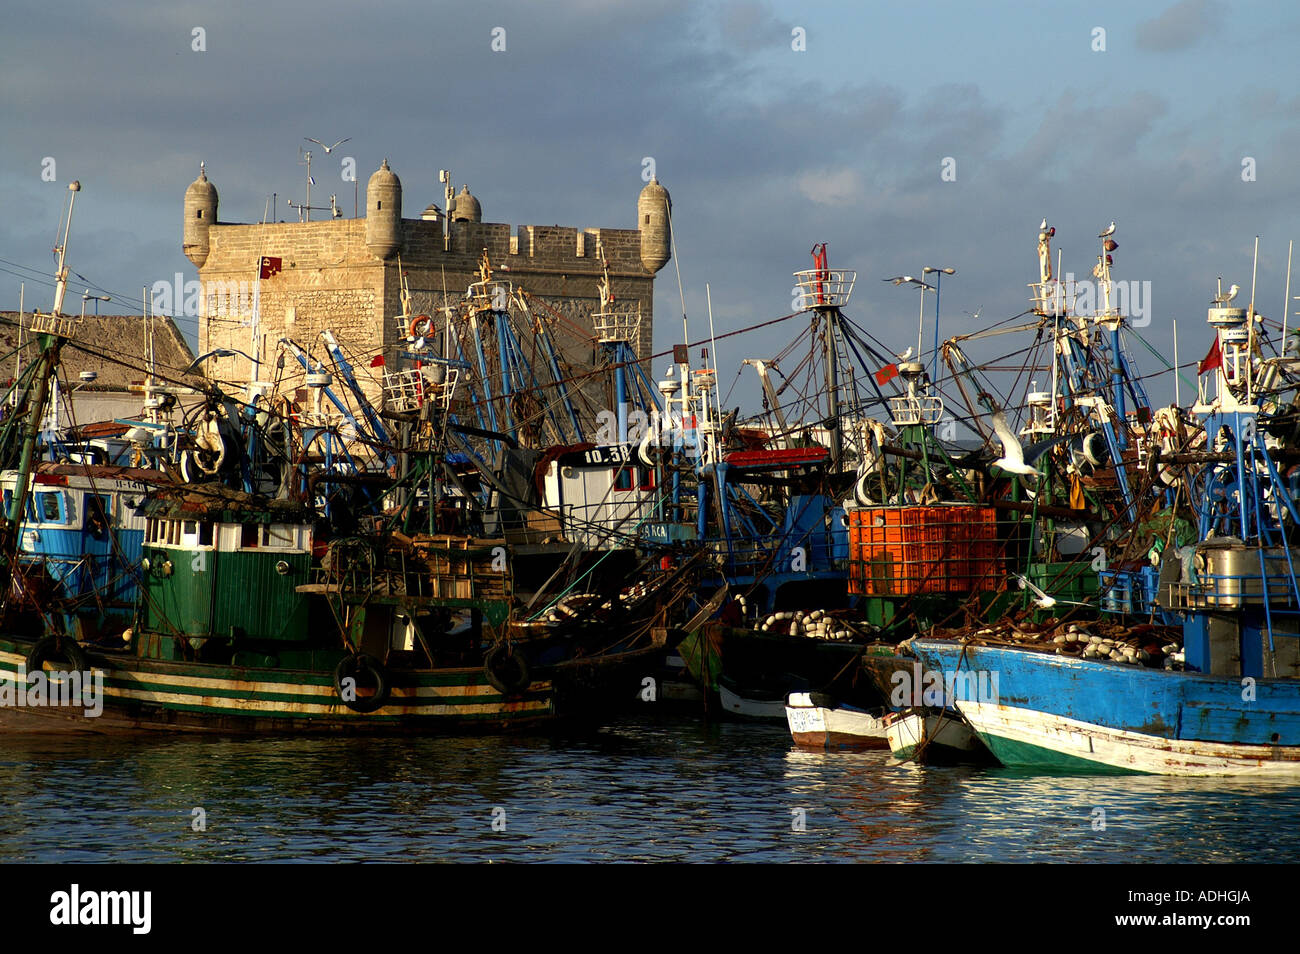 Fishing boats and craft by Turret Sqala du Port harbour Essaouira Morocco - Stock Image